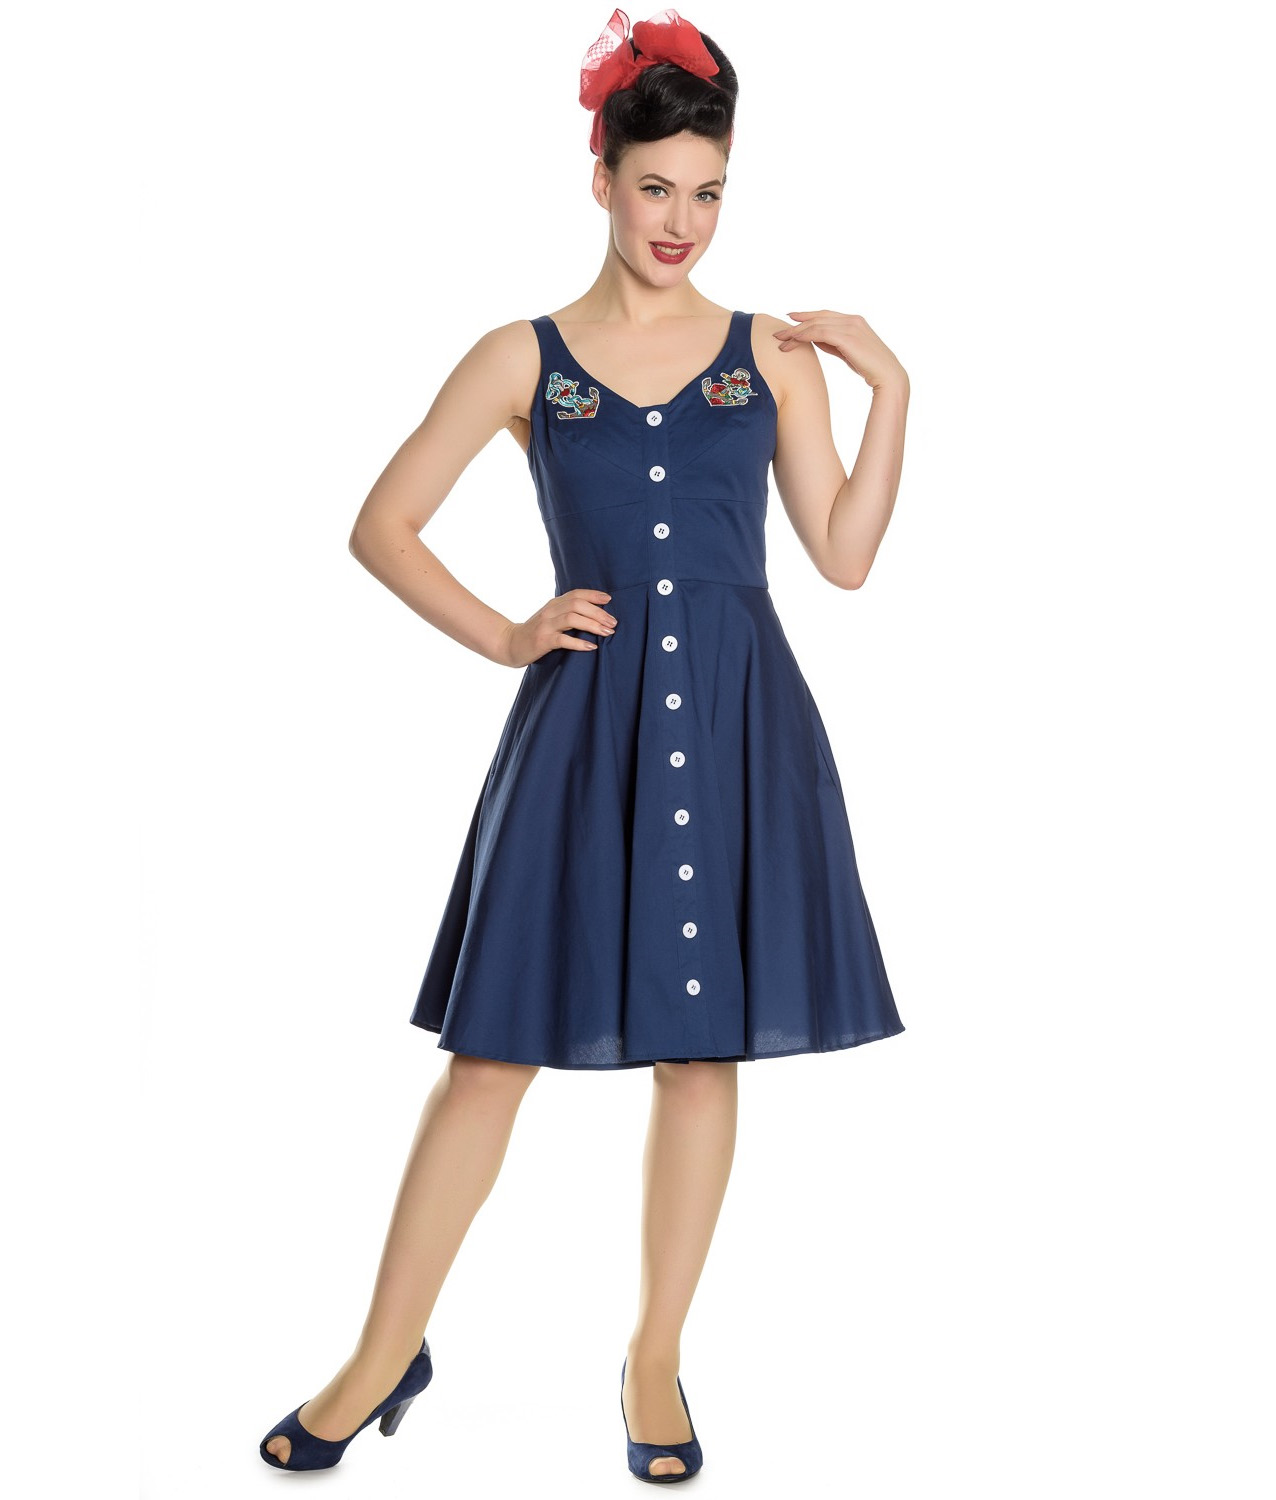 Hell-Bunny-Vintage-50s-Pin-Up-Dress-Navy-Blue-SELA-Nautical-Anchors-All-Sizes thumbnail 15